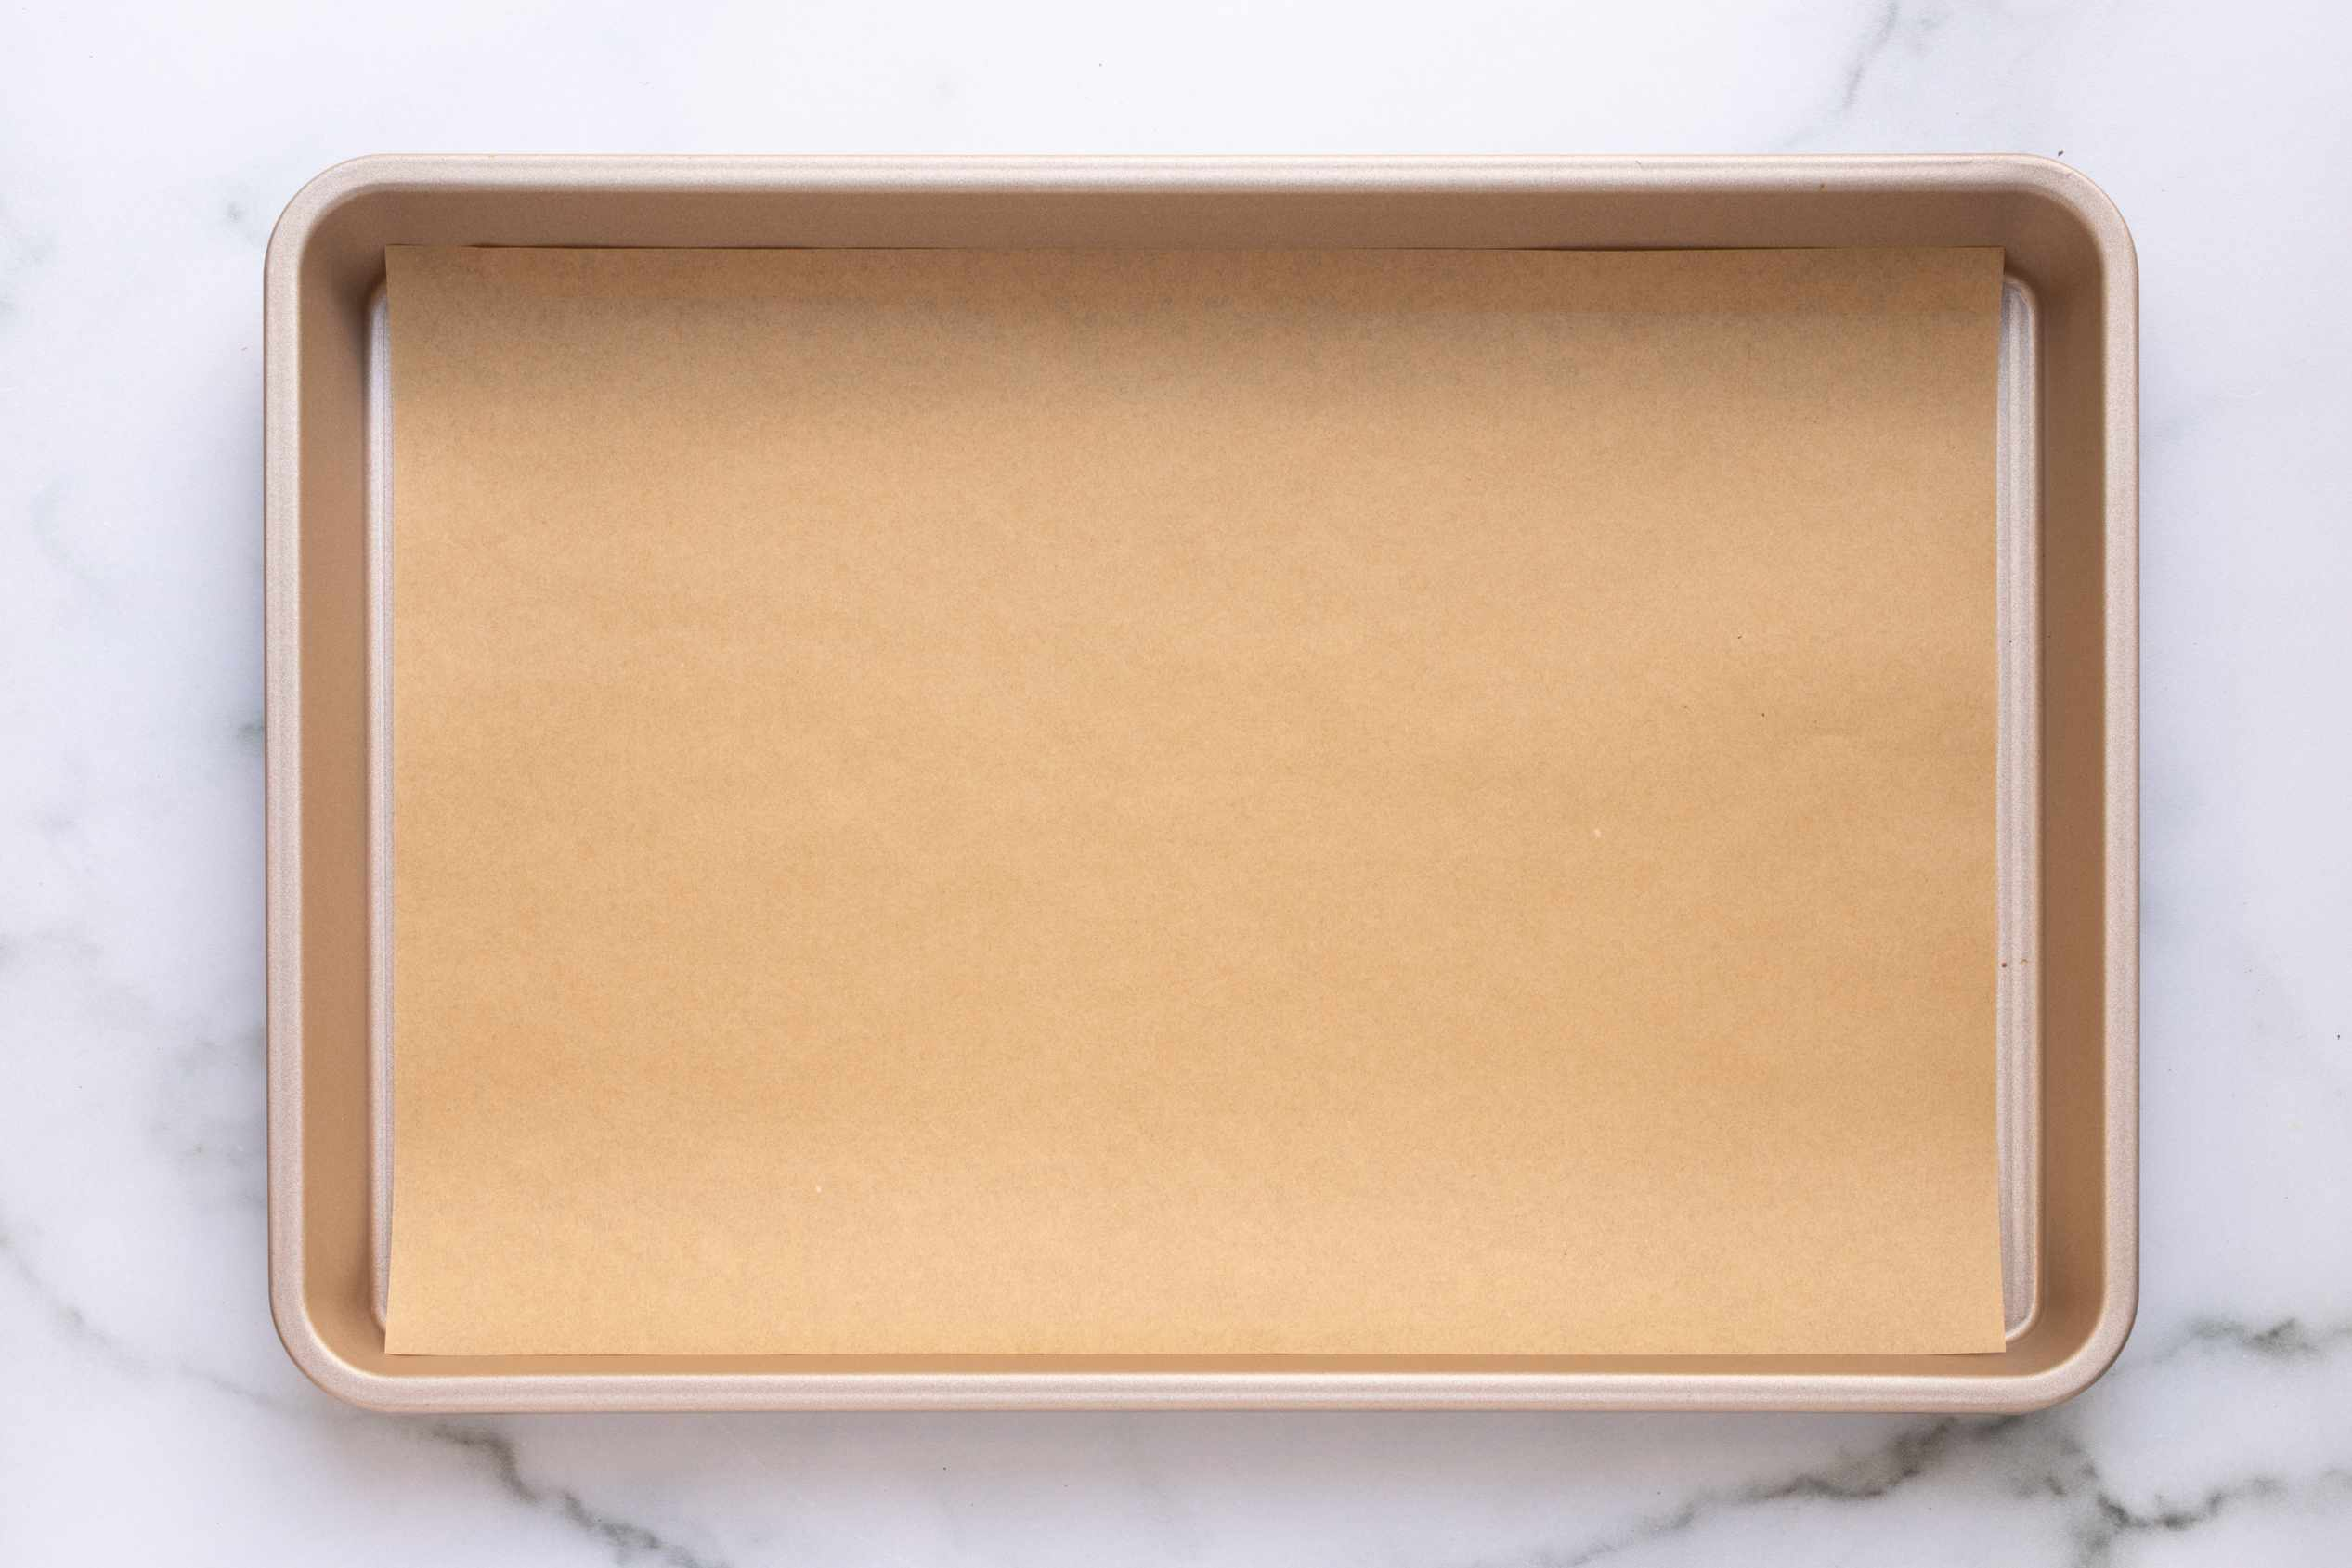 parchment lined baking sheet pan